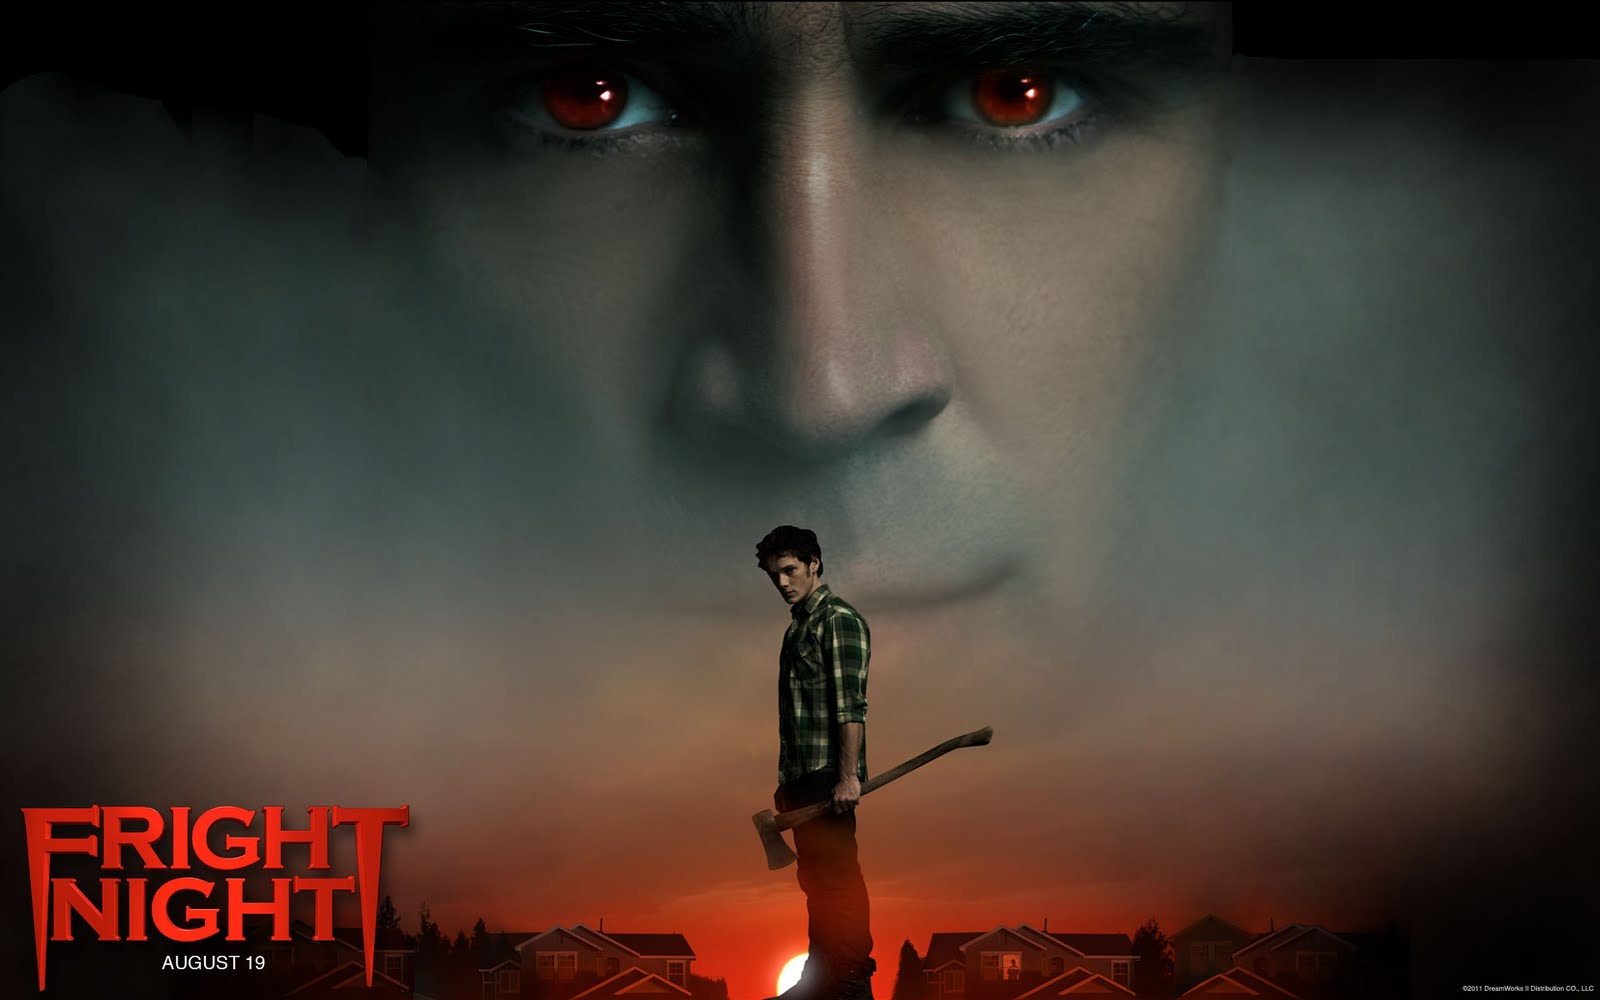 http://1.bp.blogspot.com/-43fpPOzHiSc/Tl4JD530iLI/AAAAAAAAAgg/lGhn552ikDM/s1600/Colin_Farrell_in_Fright_Night_Wallpaper.jpg